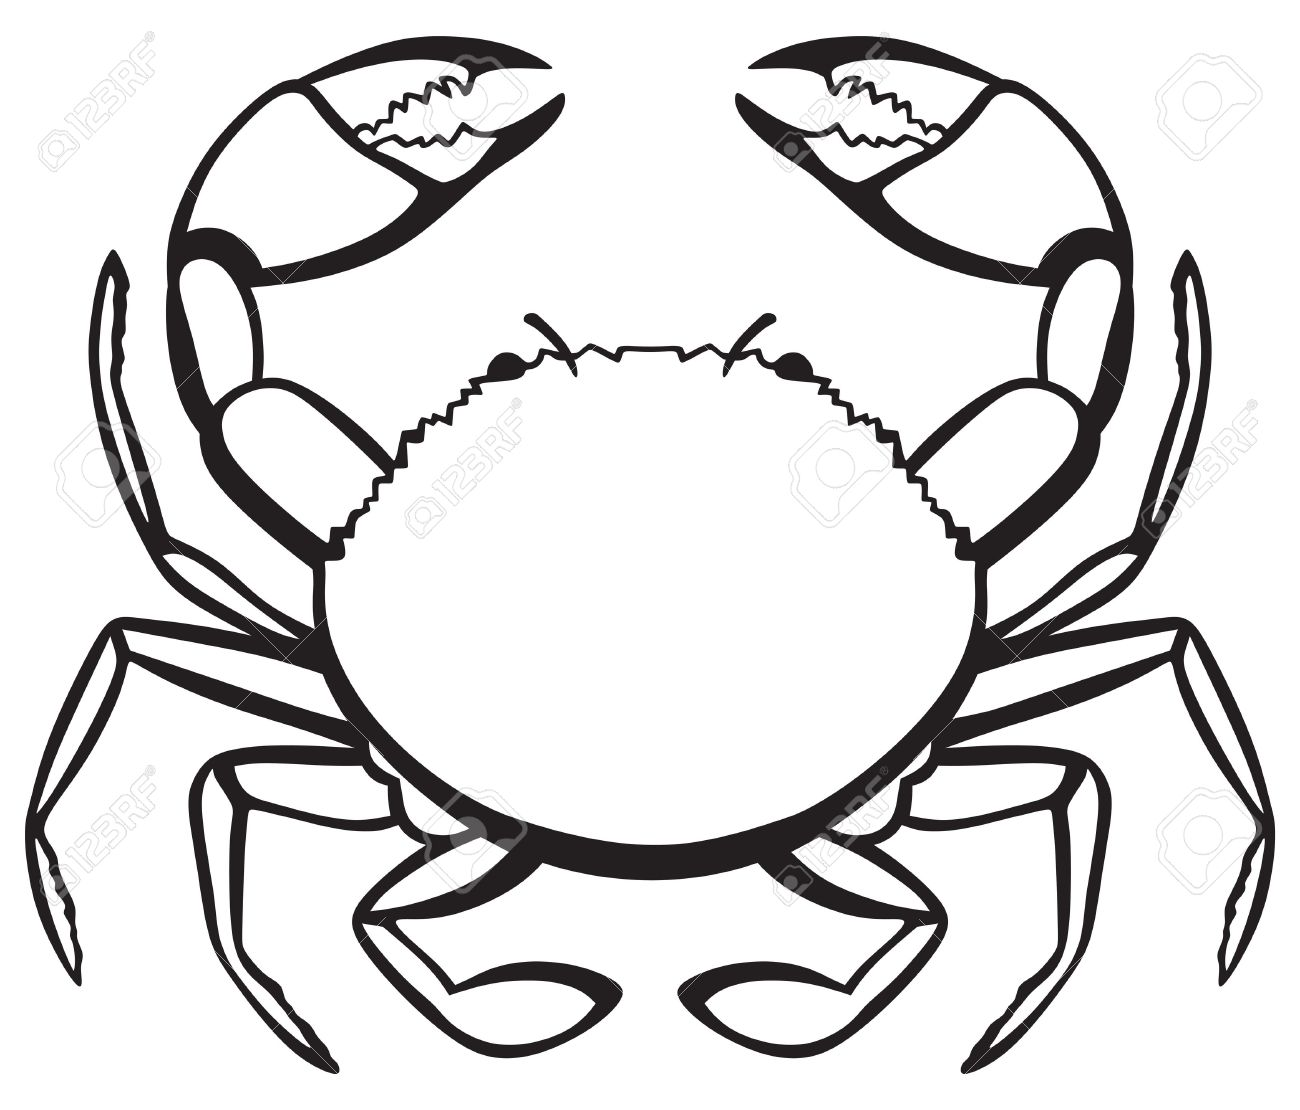 Claw shaped clipart - Clipground